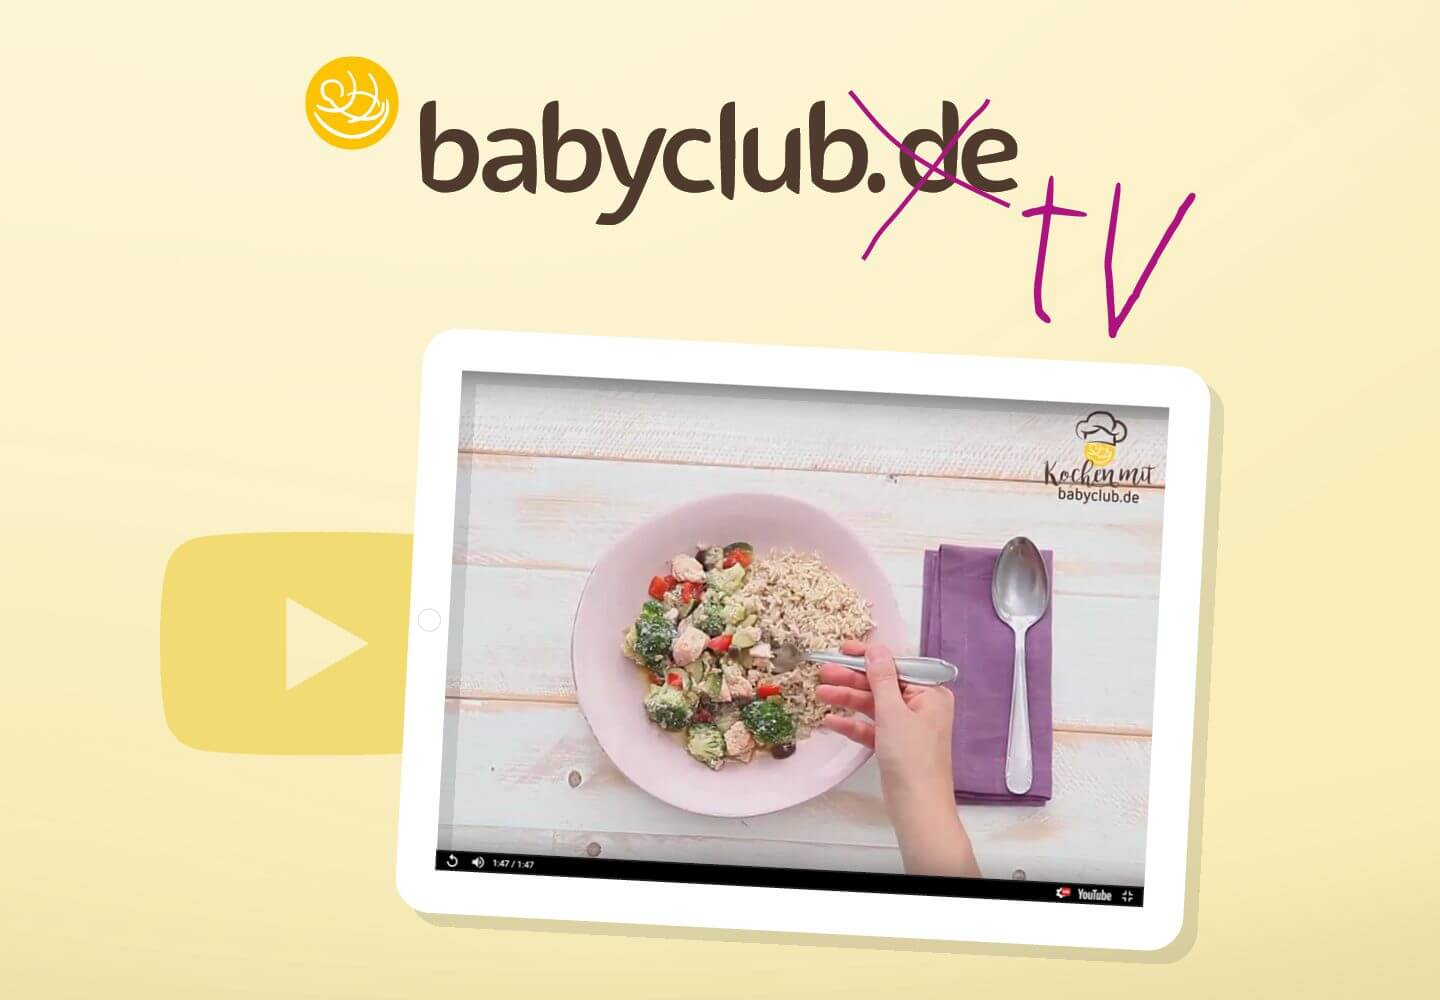 EBEP_181101_Relaunch_Web_Babyclub-TV_01_1_1